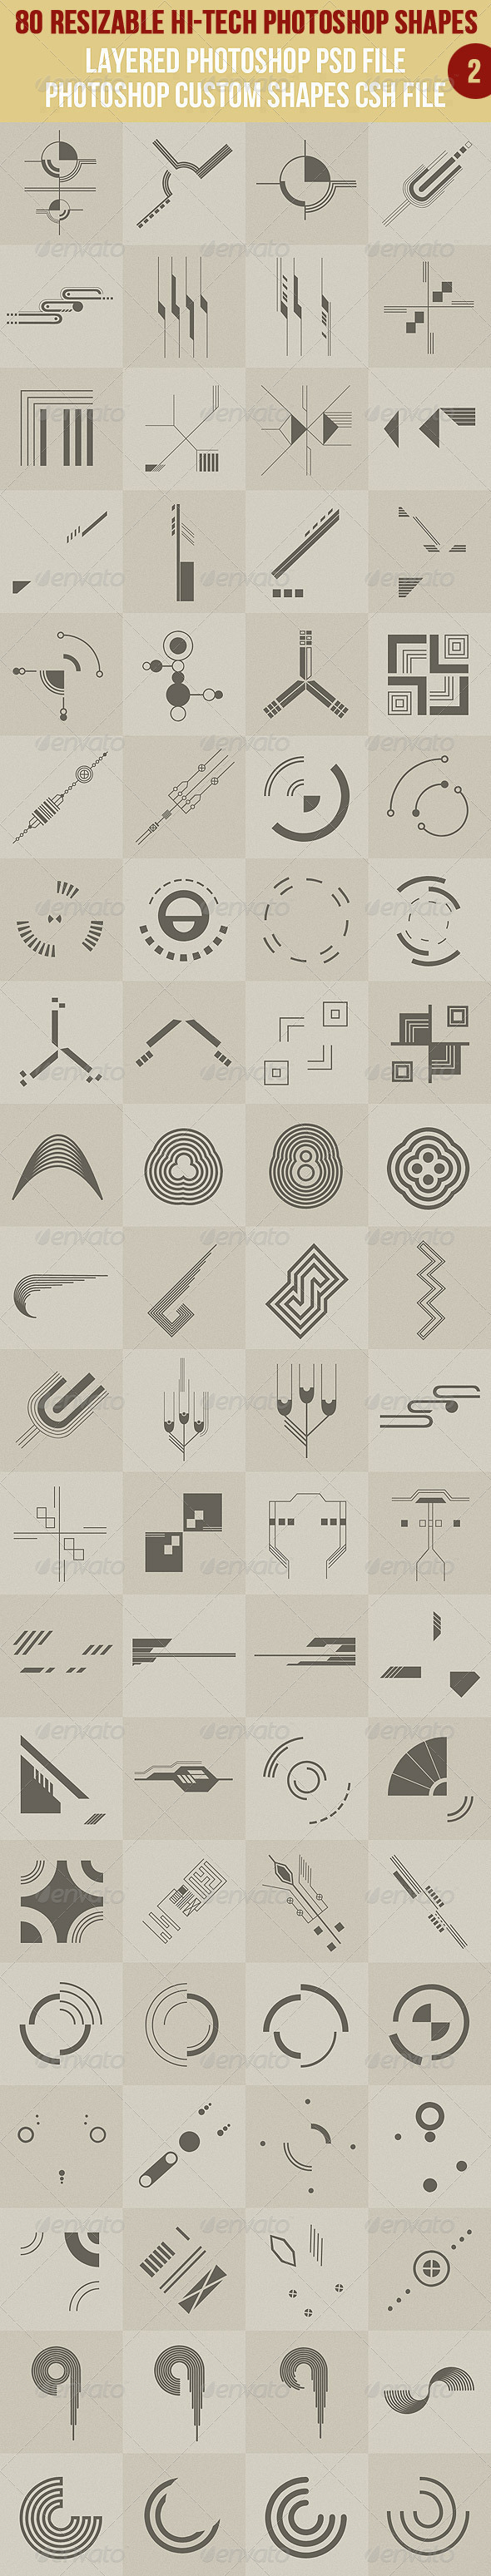 80 Photoshop Hi-Tech Shapes 2 - Symbols Shapes